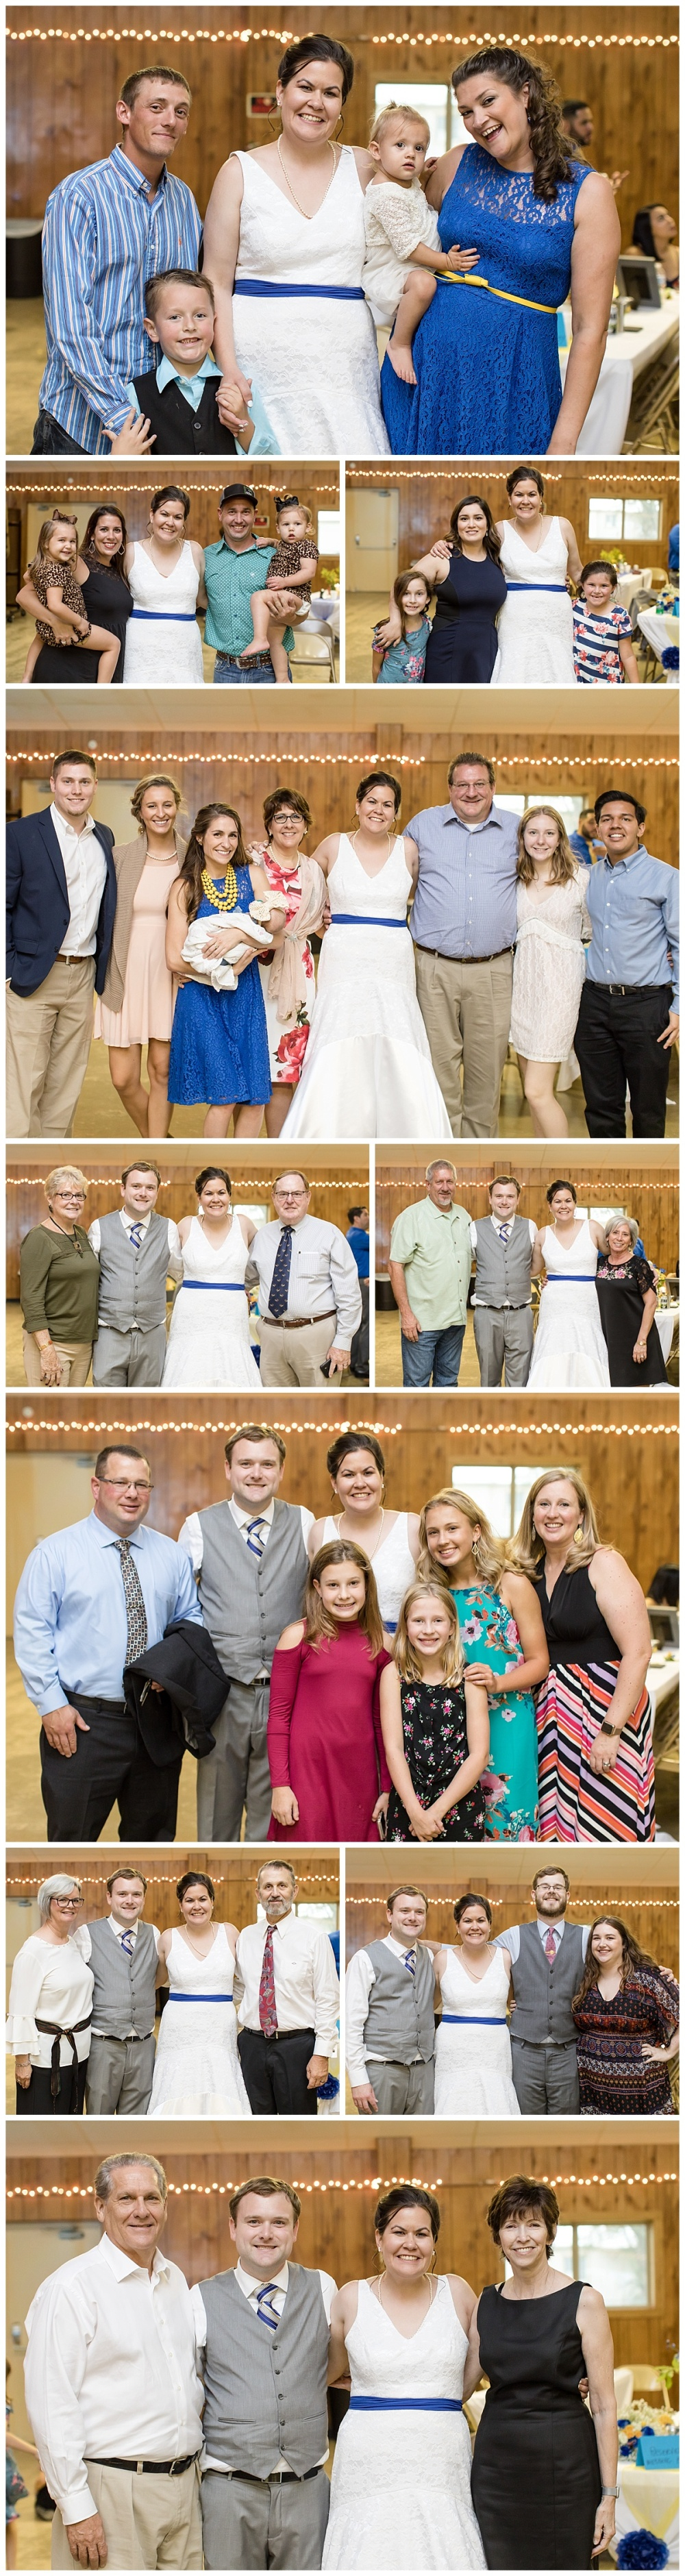 Texas-Wedding-Photographer-La-Coste-Our-Lady-Of-Grace-Church-Bride-Groom-Lego-Theme-Carly-Barton-Photography_0080.jpg